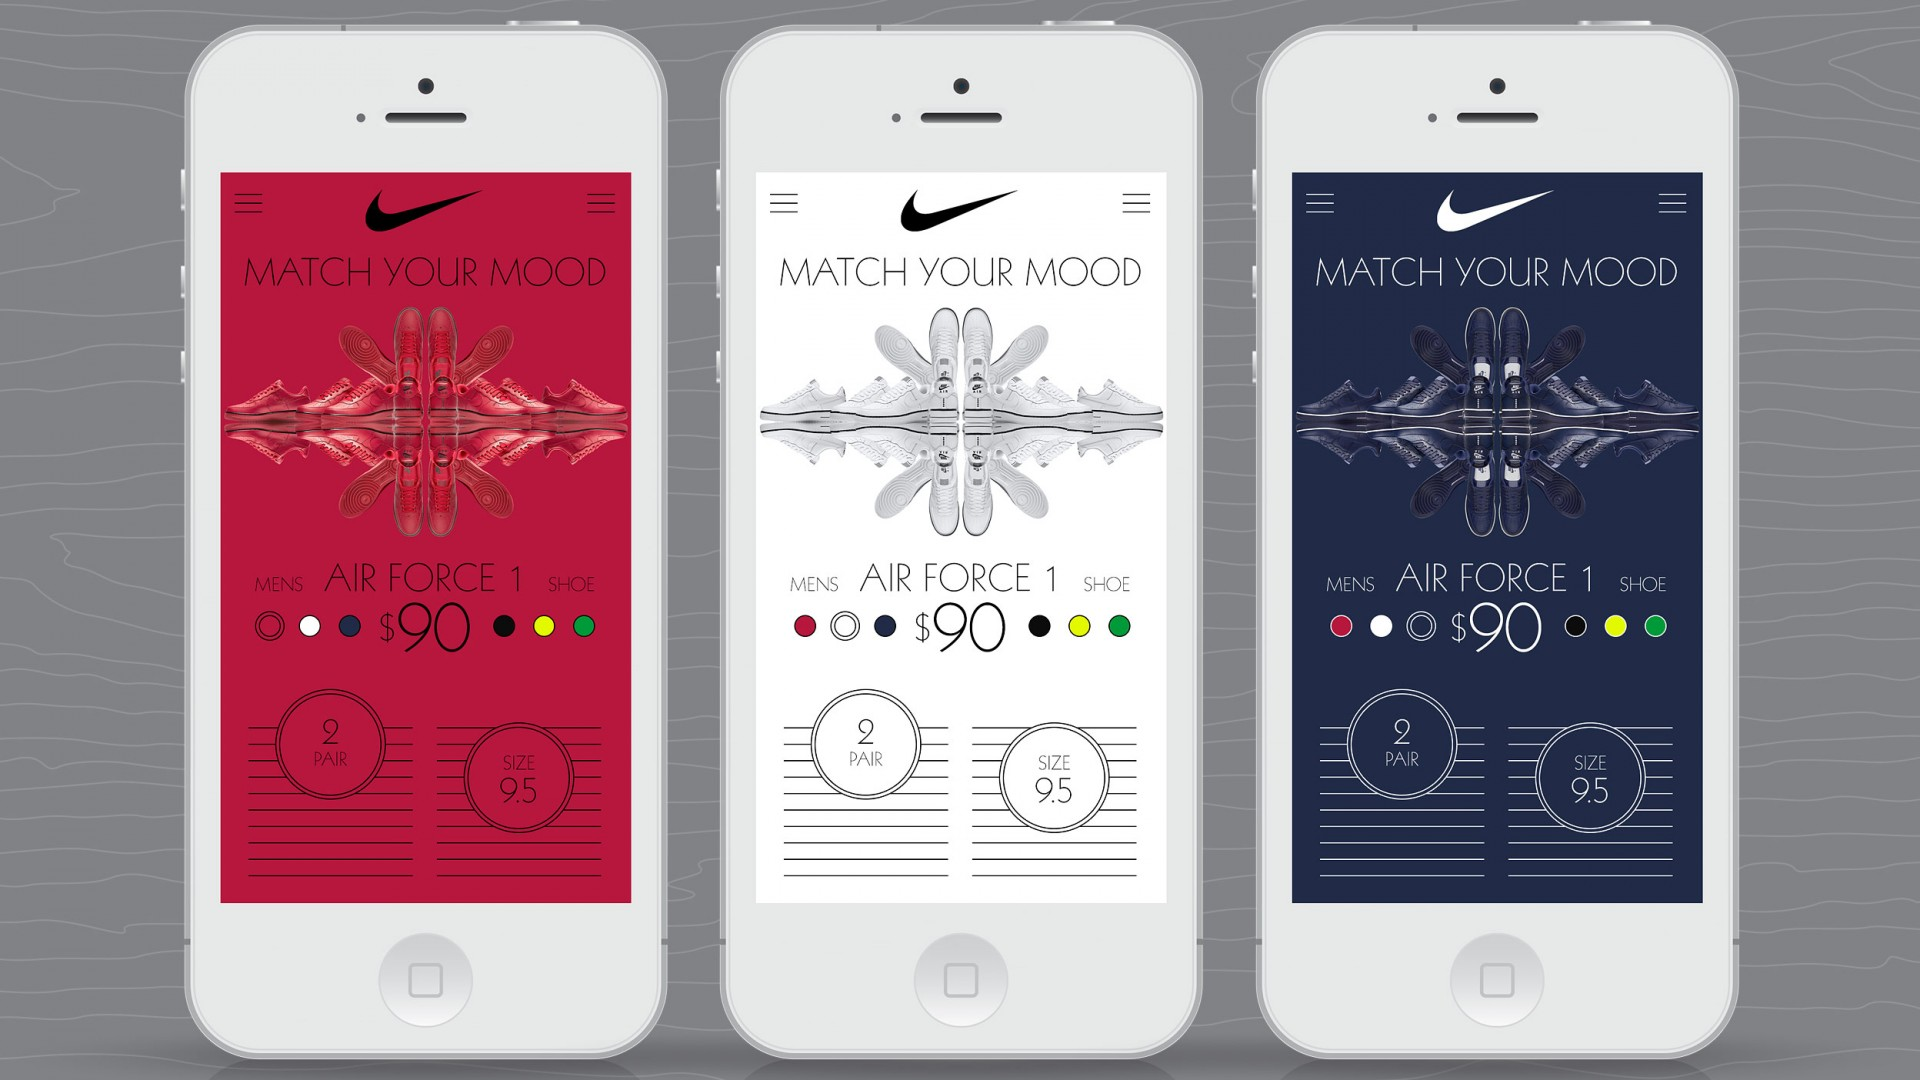 Match Your Mood, Nike UX/UI, mobile phone views.